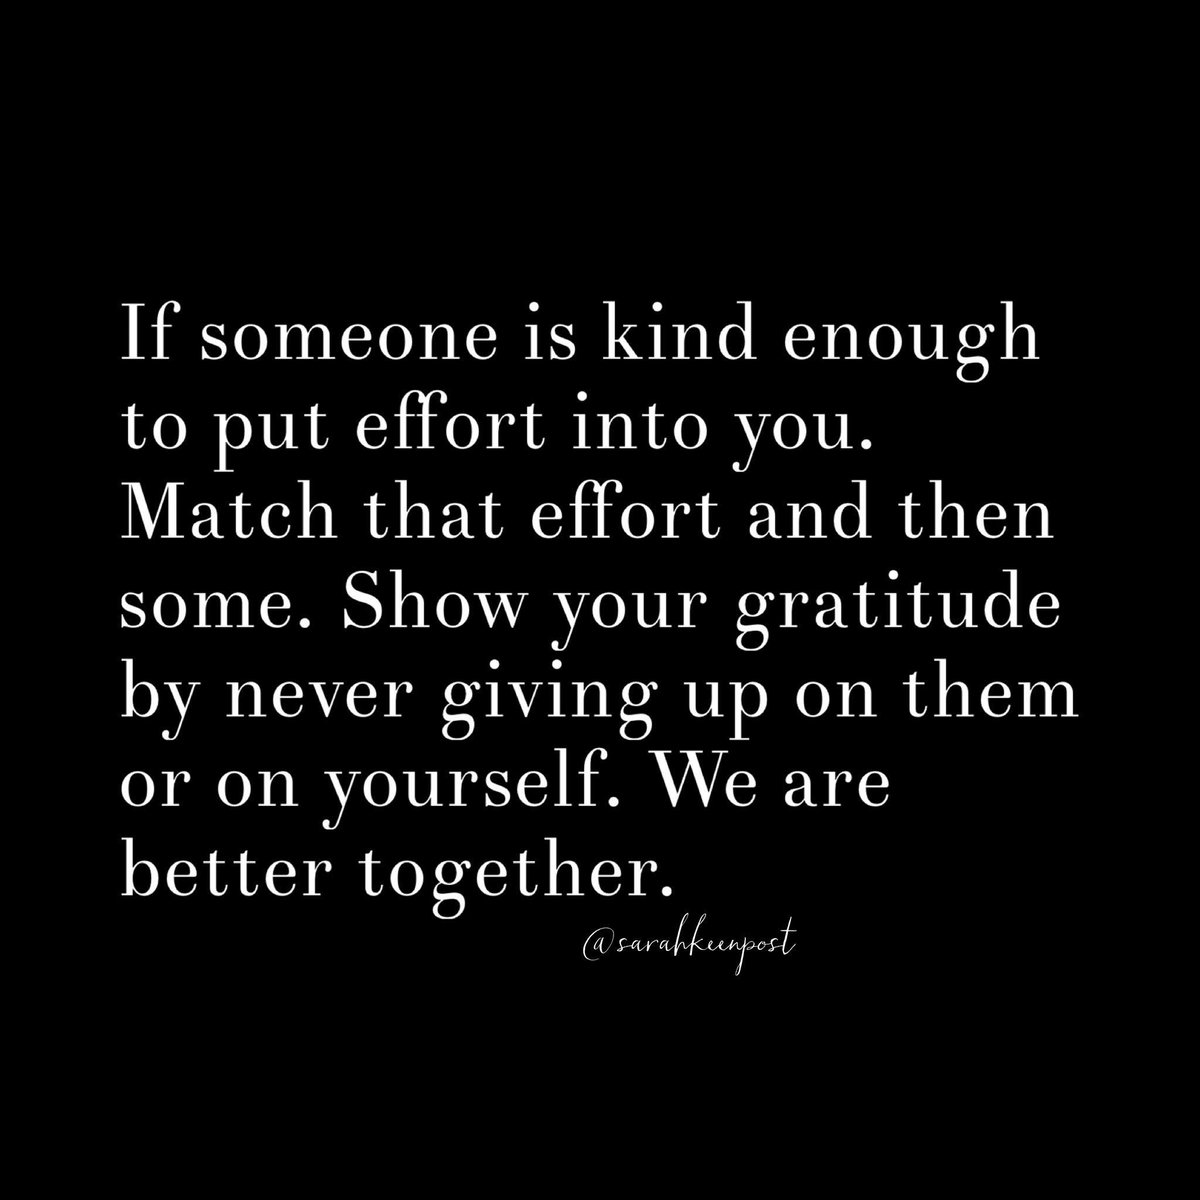 If someone is #kind enough to put #effort into you. Match that effort and then some. Show your #gratitude by never giving up on them or on yourself. We are better together.   #Quote #MyThoughts #Leadership #NeverGiveUp #SaturdayMotivation